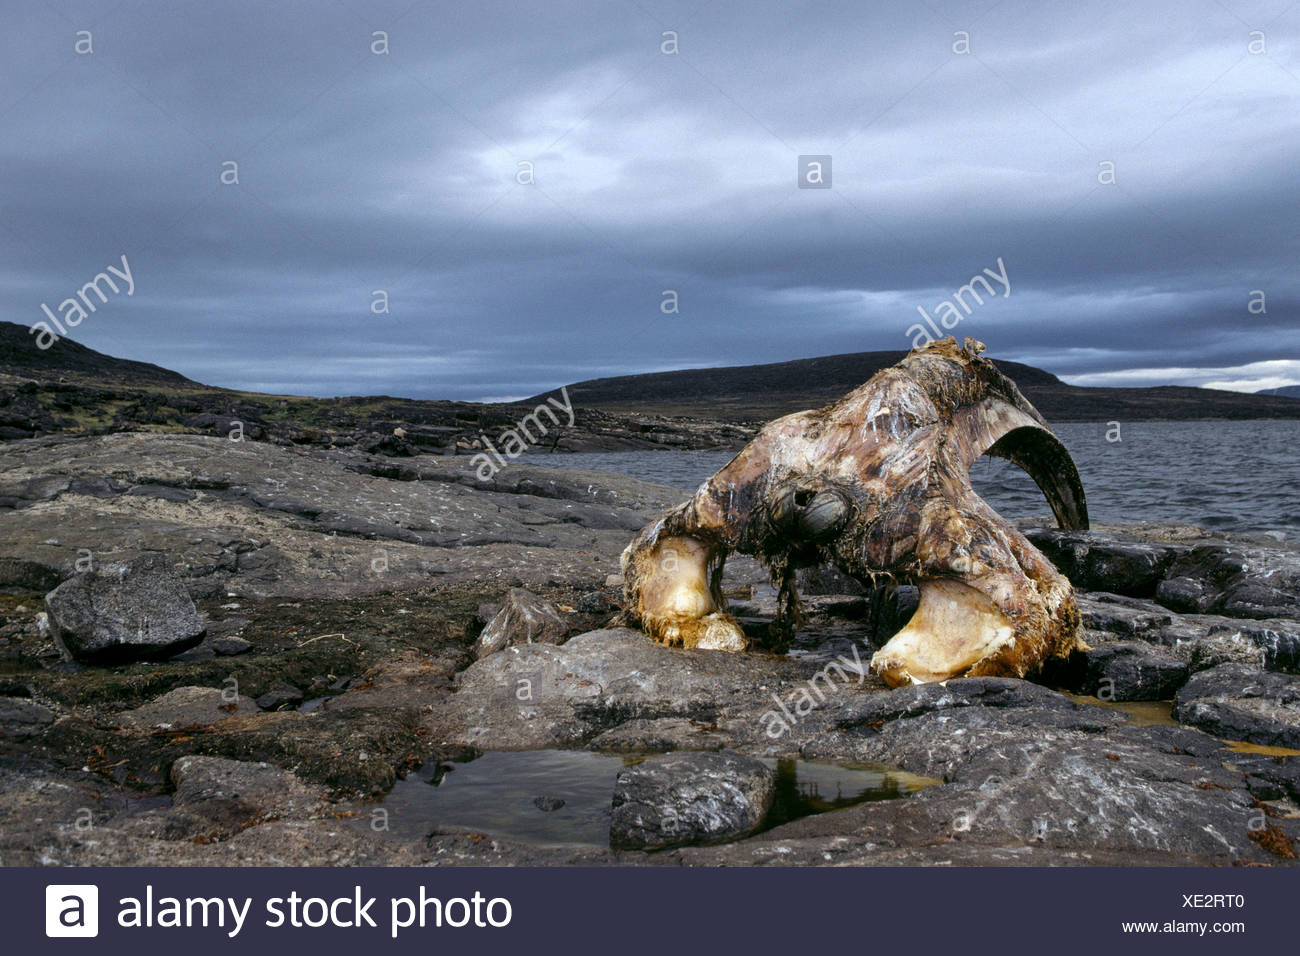 Whale jawbone stock photos whale jawbone stock images alamy the jawbone of a bowhead whale lies on a beach stock image biocorpaavc Image collections